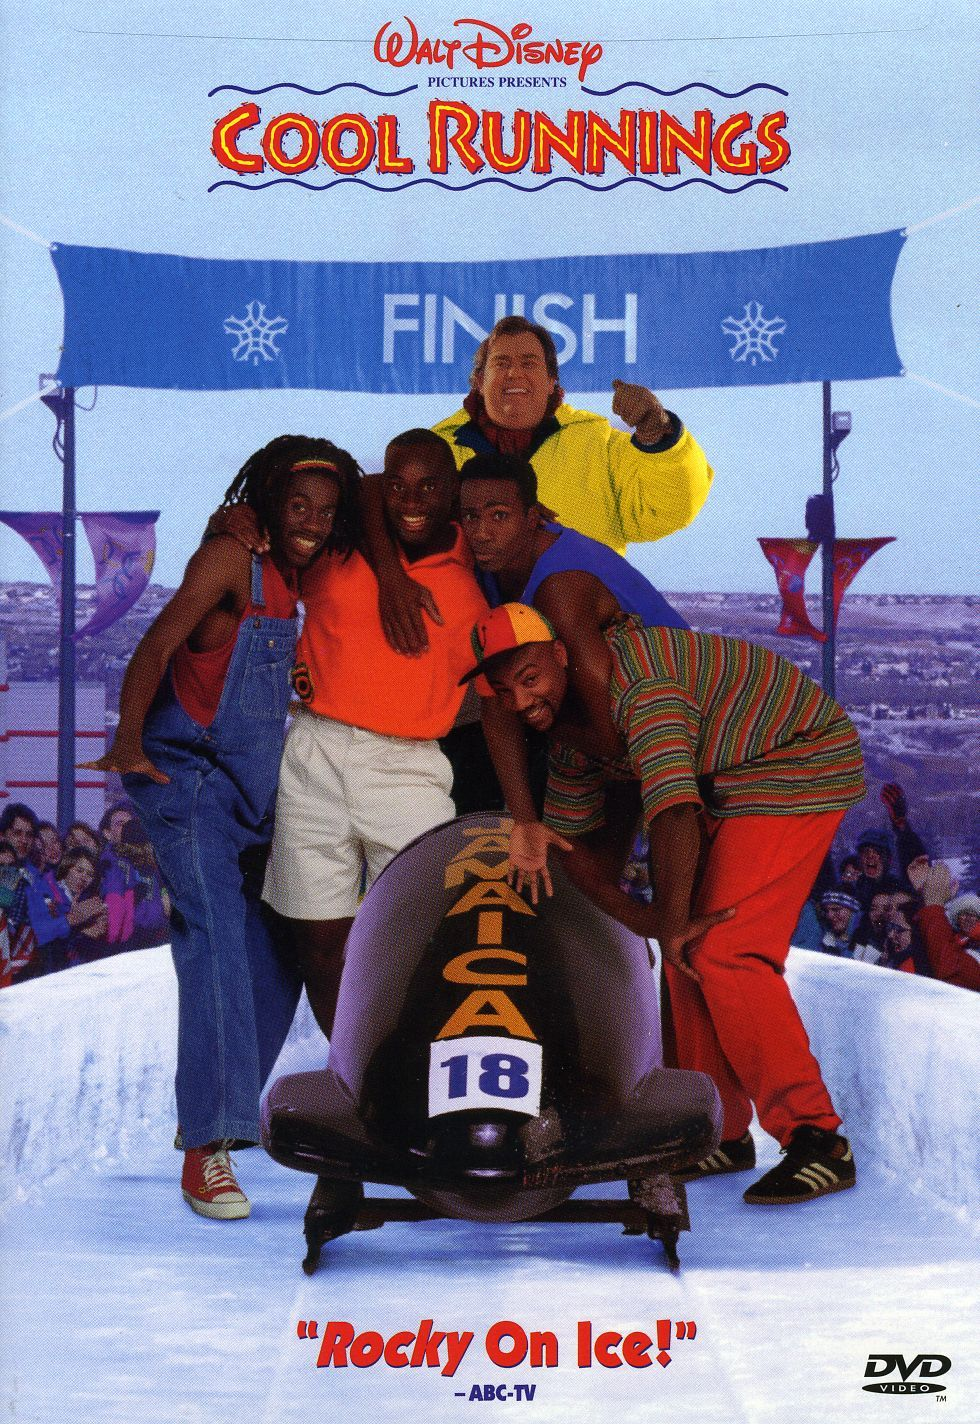 Cool Runnings Comedy with Heart! we loved it. Running